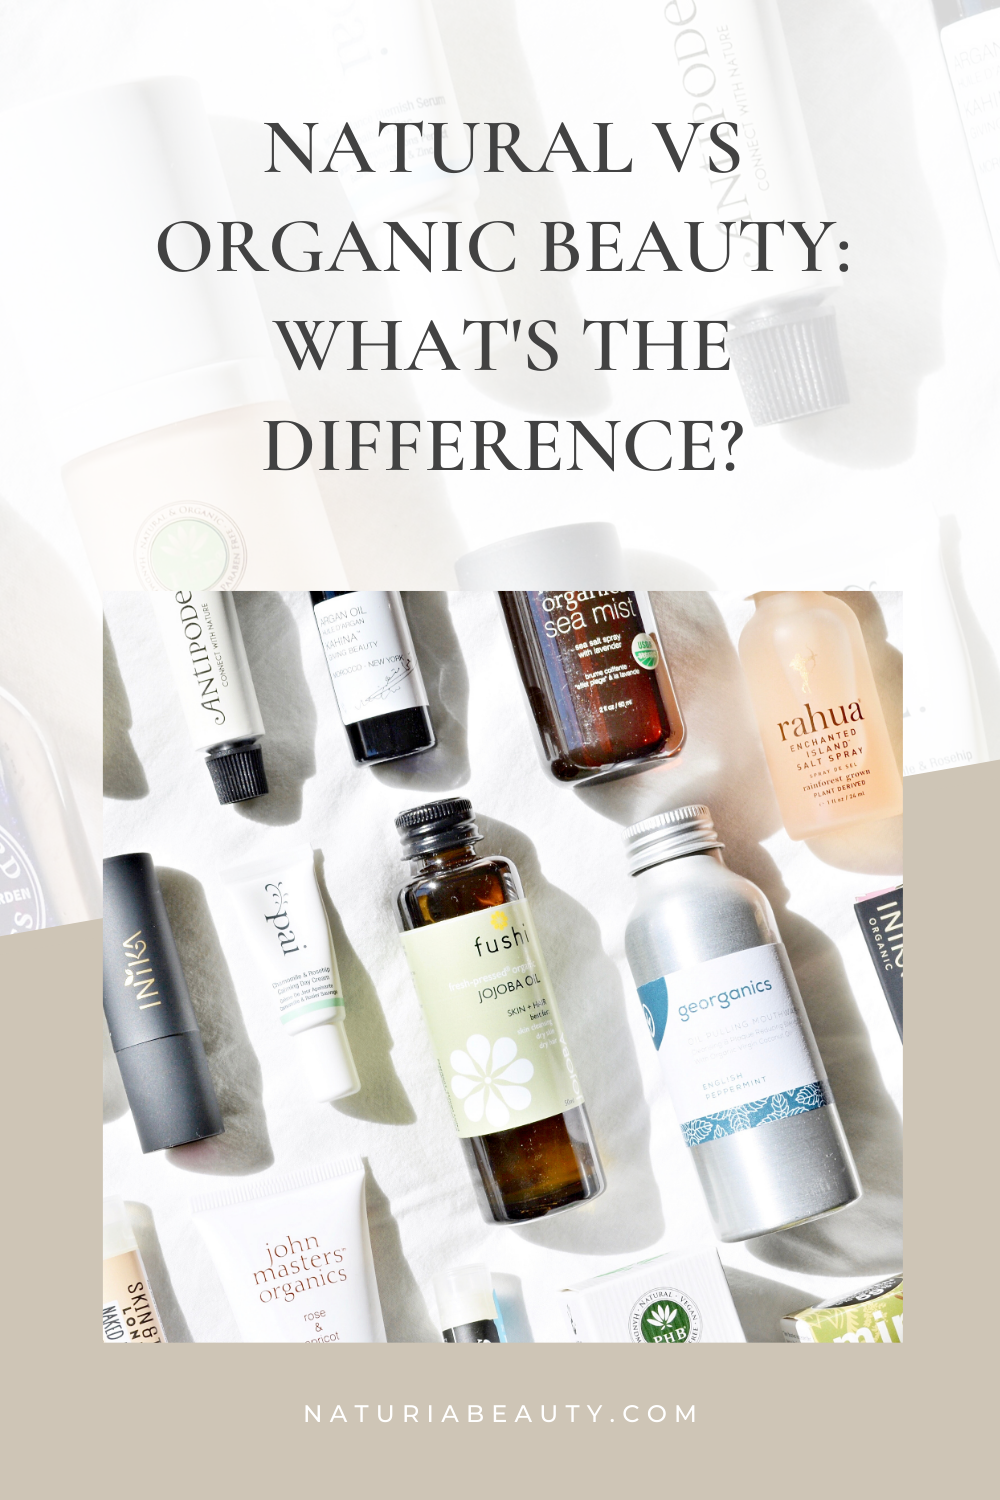 Ever wondered what's the difference between natural and organic beauty? Click to read